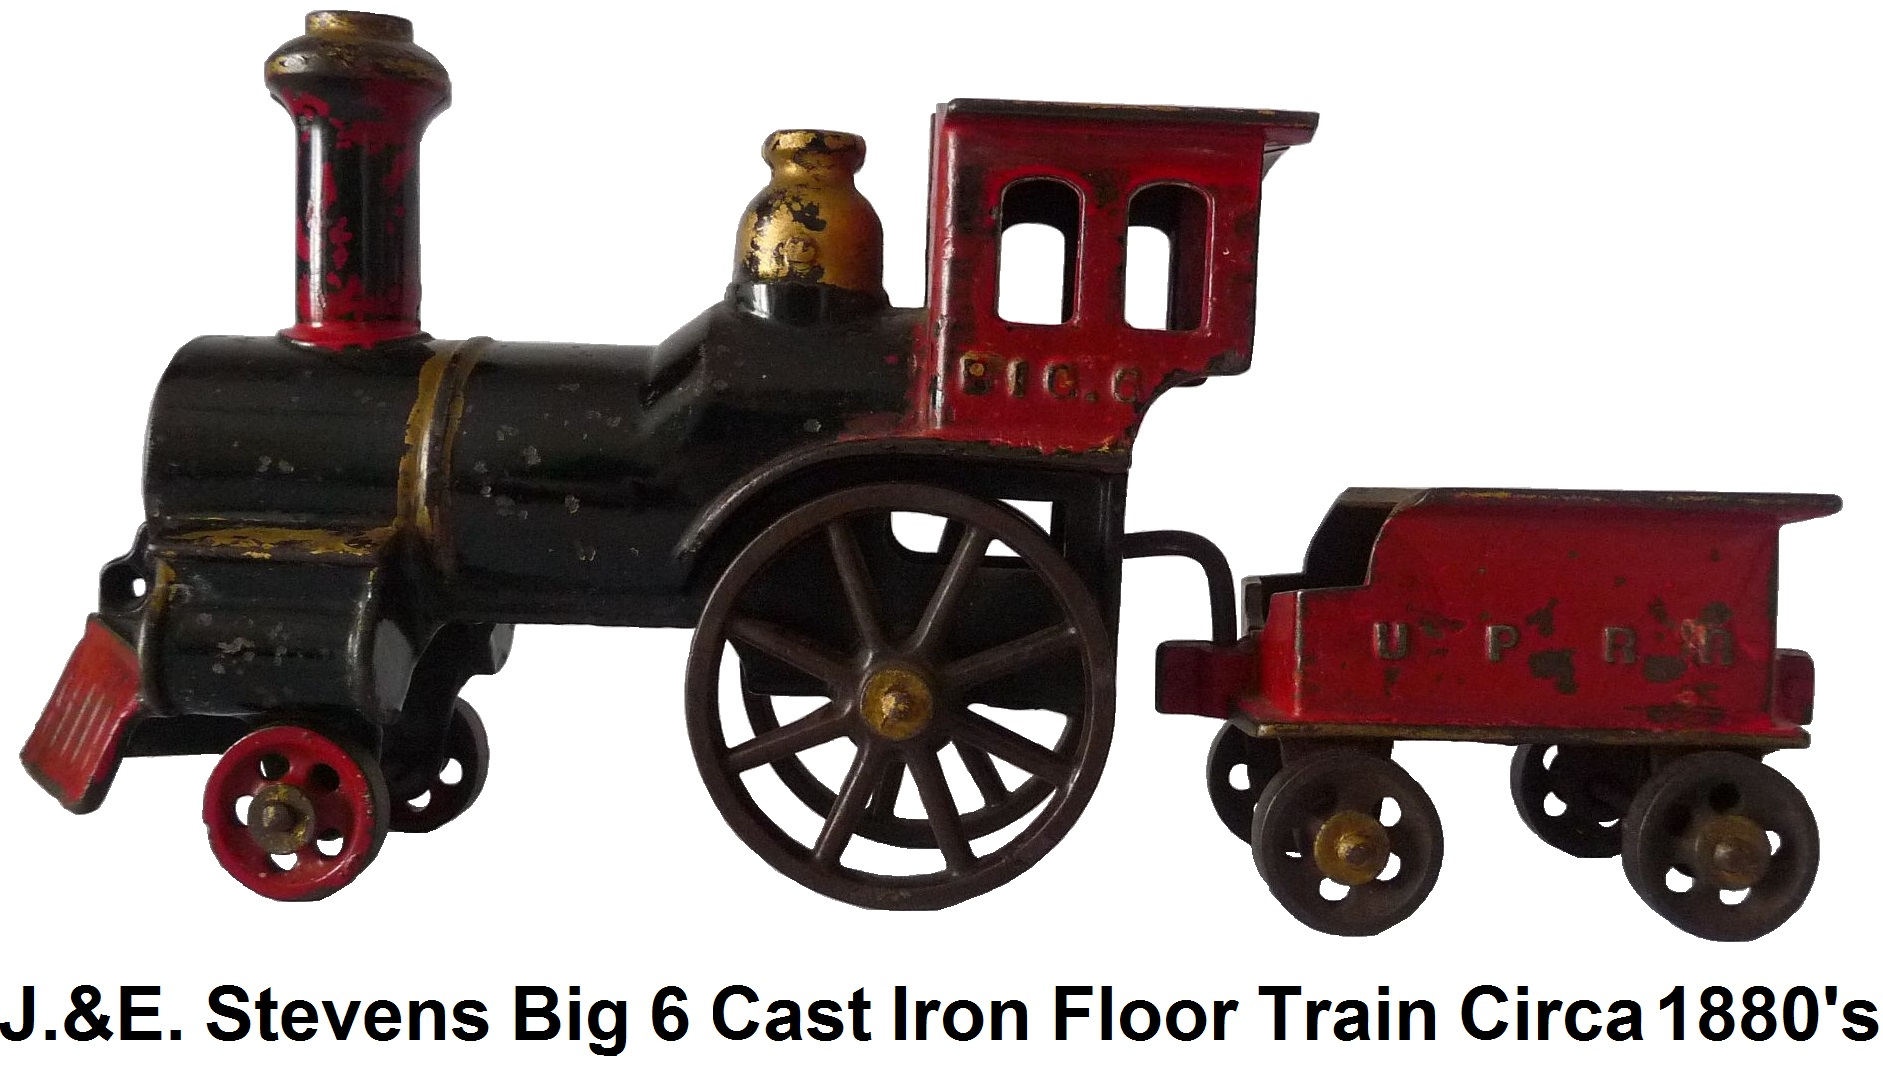 J. & E. Stevens Big 6 cast iron floor train circa 1880's